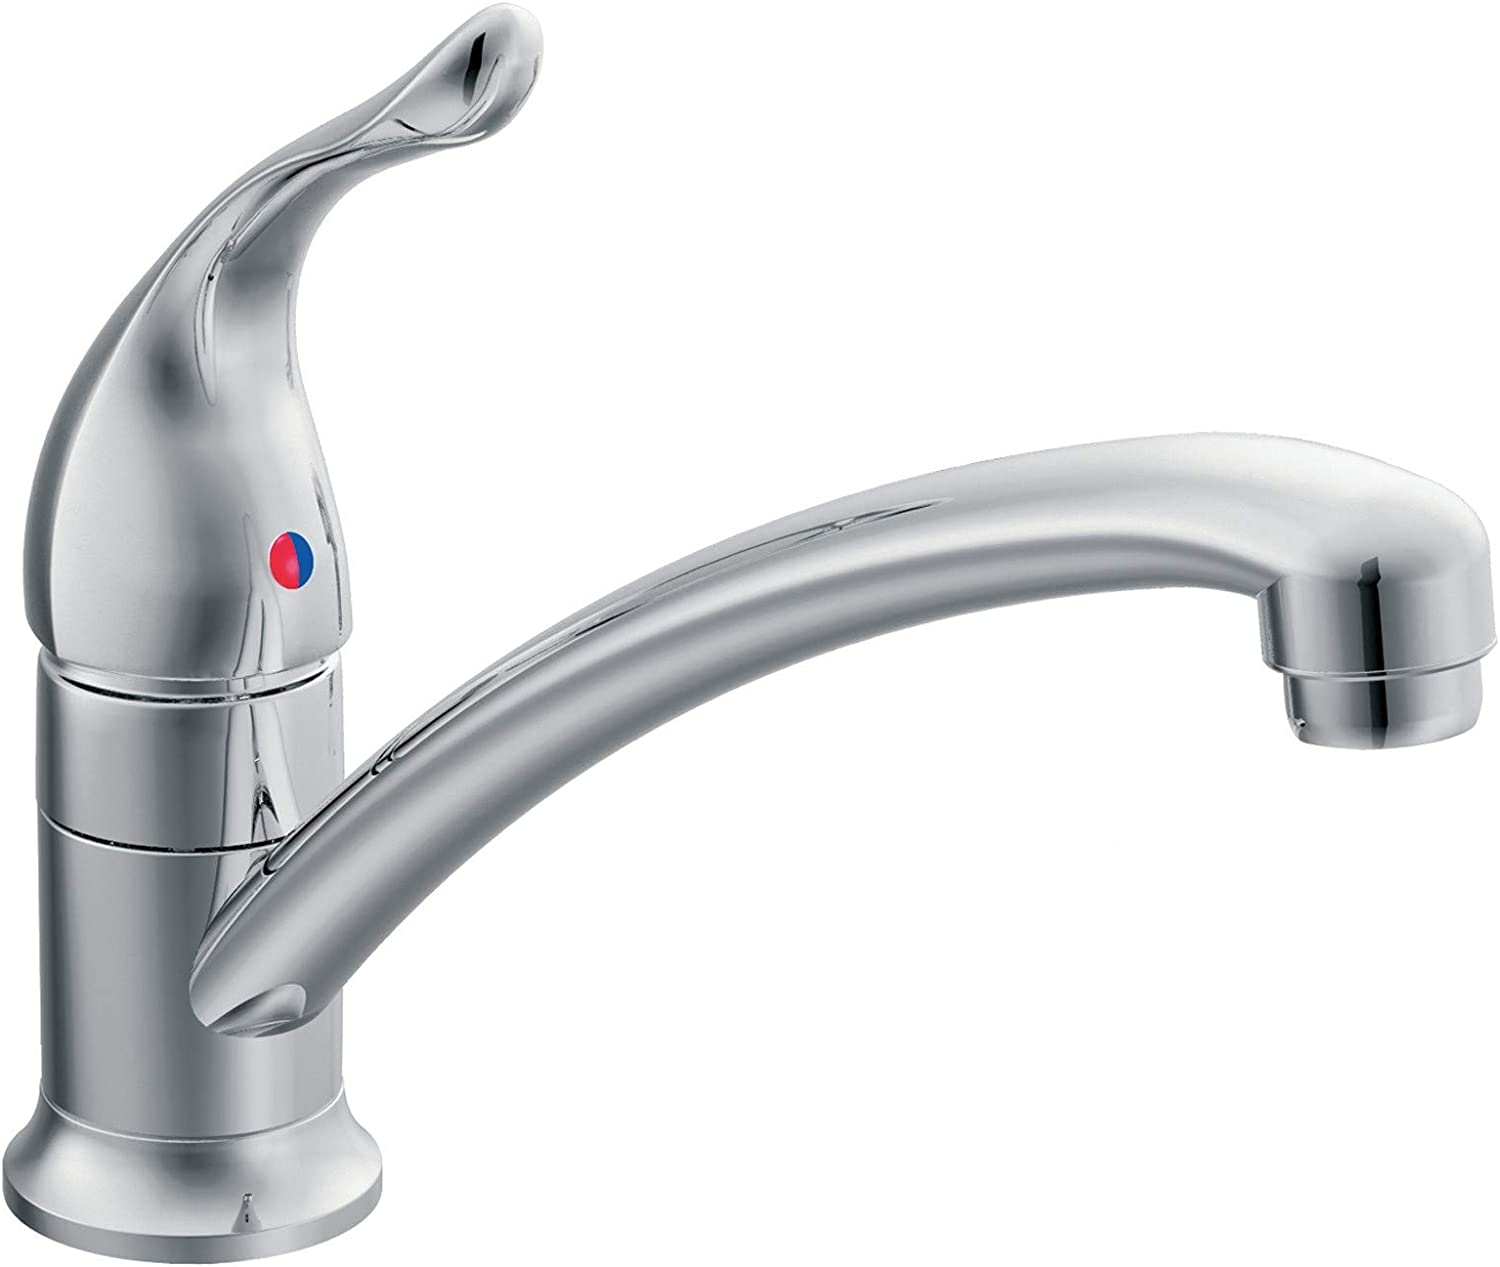 Moen 7423 Chateau One Handle Low Arc Kitchen Faucet 0 5 Chrome Touch On Kitchen Sink Faucets Amazon Com